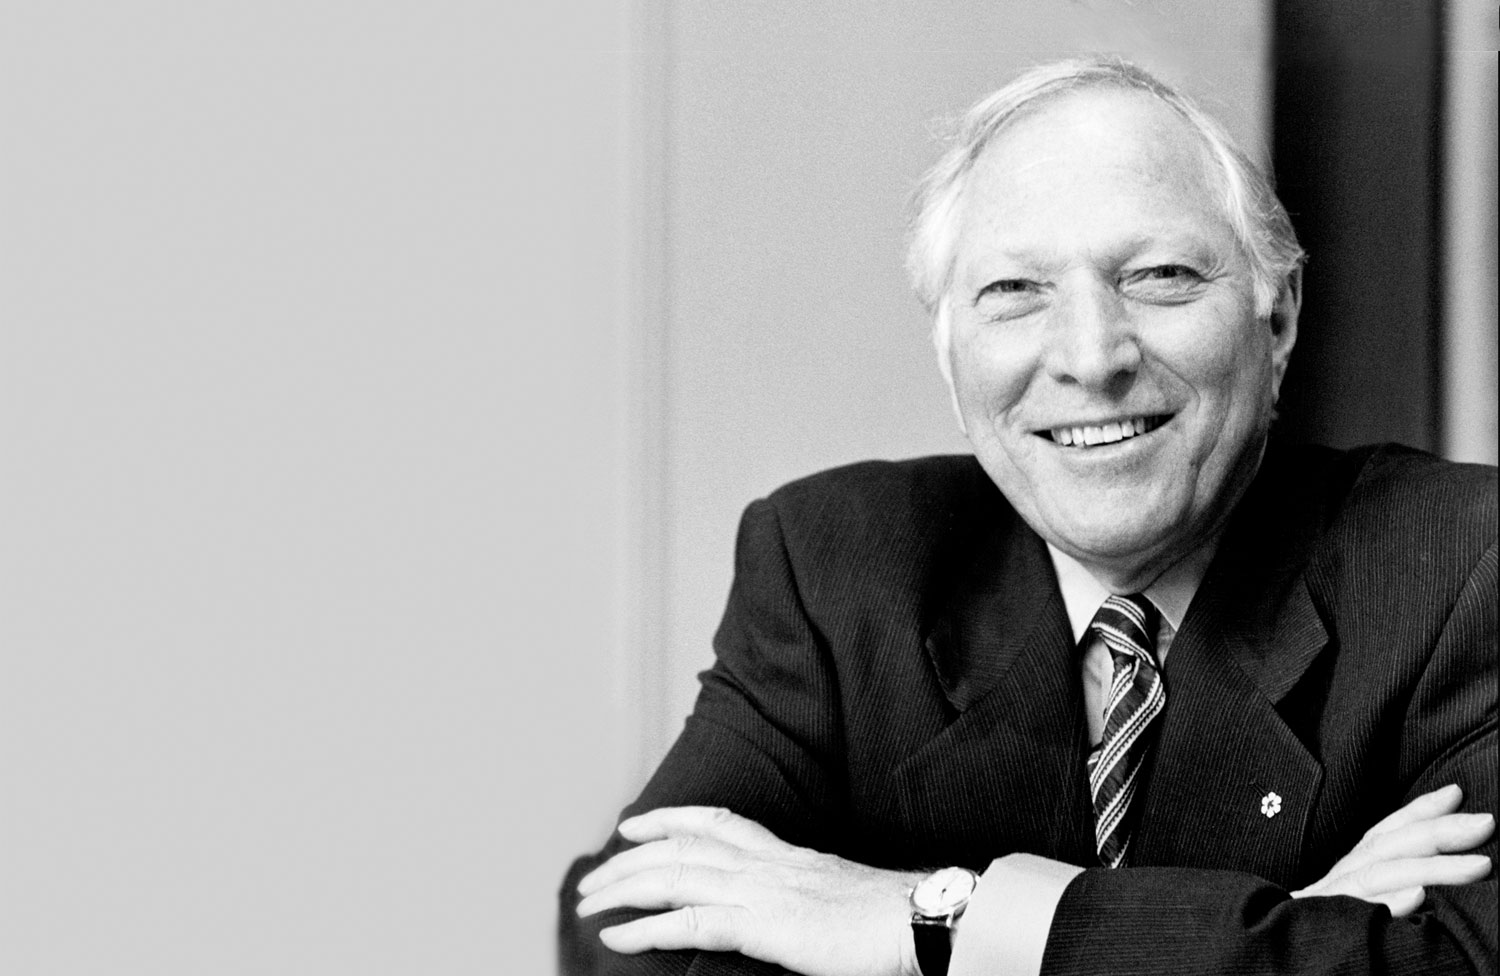 Remembering Joseph L. Rotman (1935-2015)